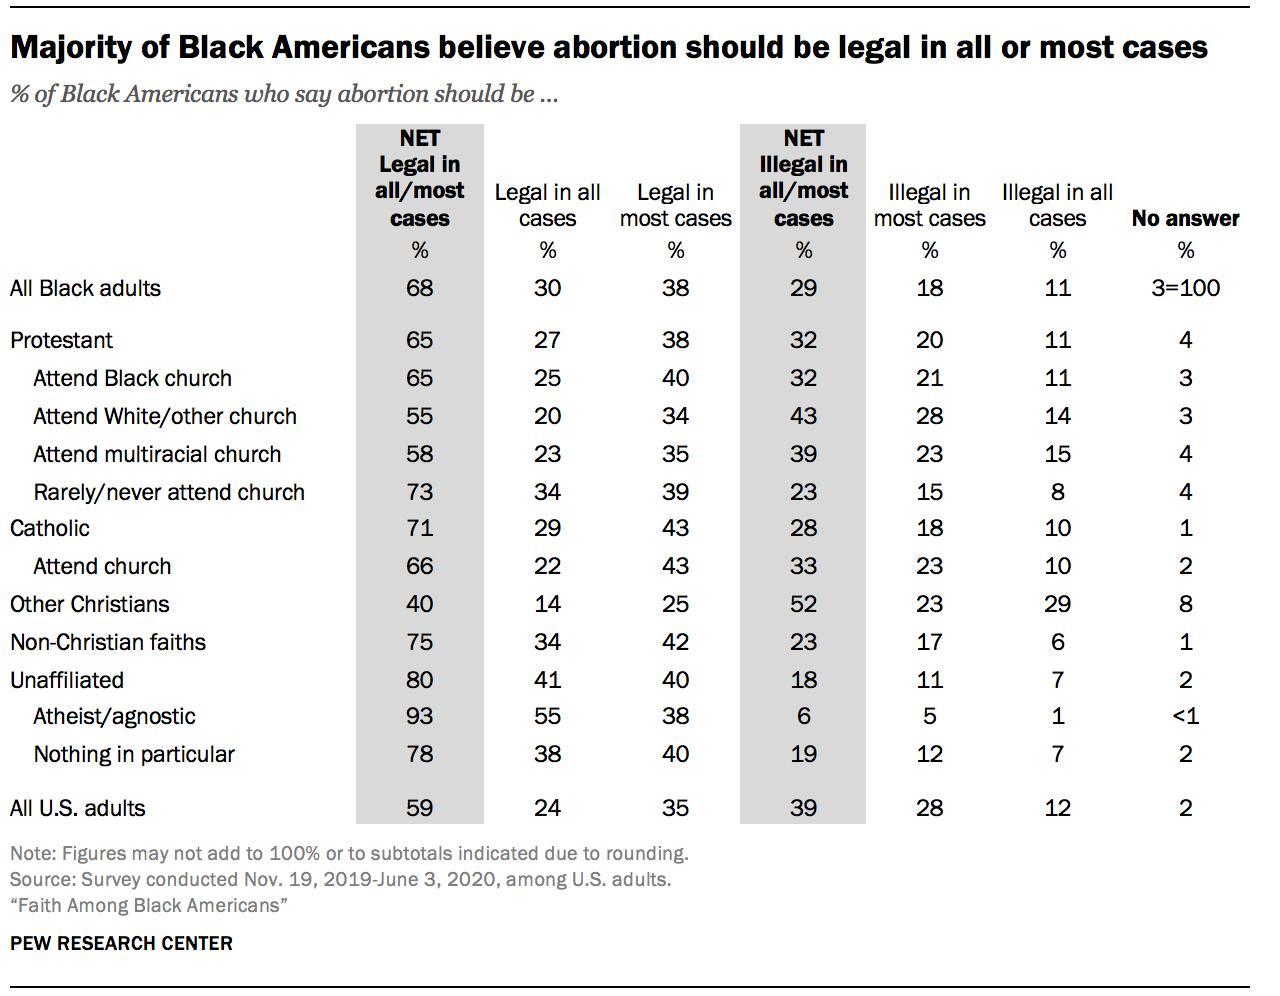 Majority of Black Americans believe abortion should be legal in all or most cases